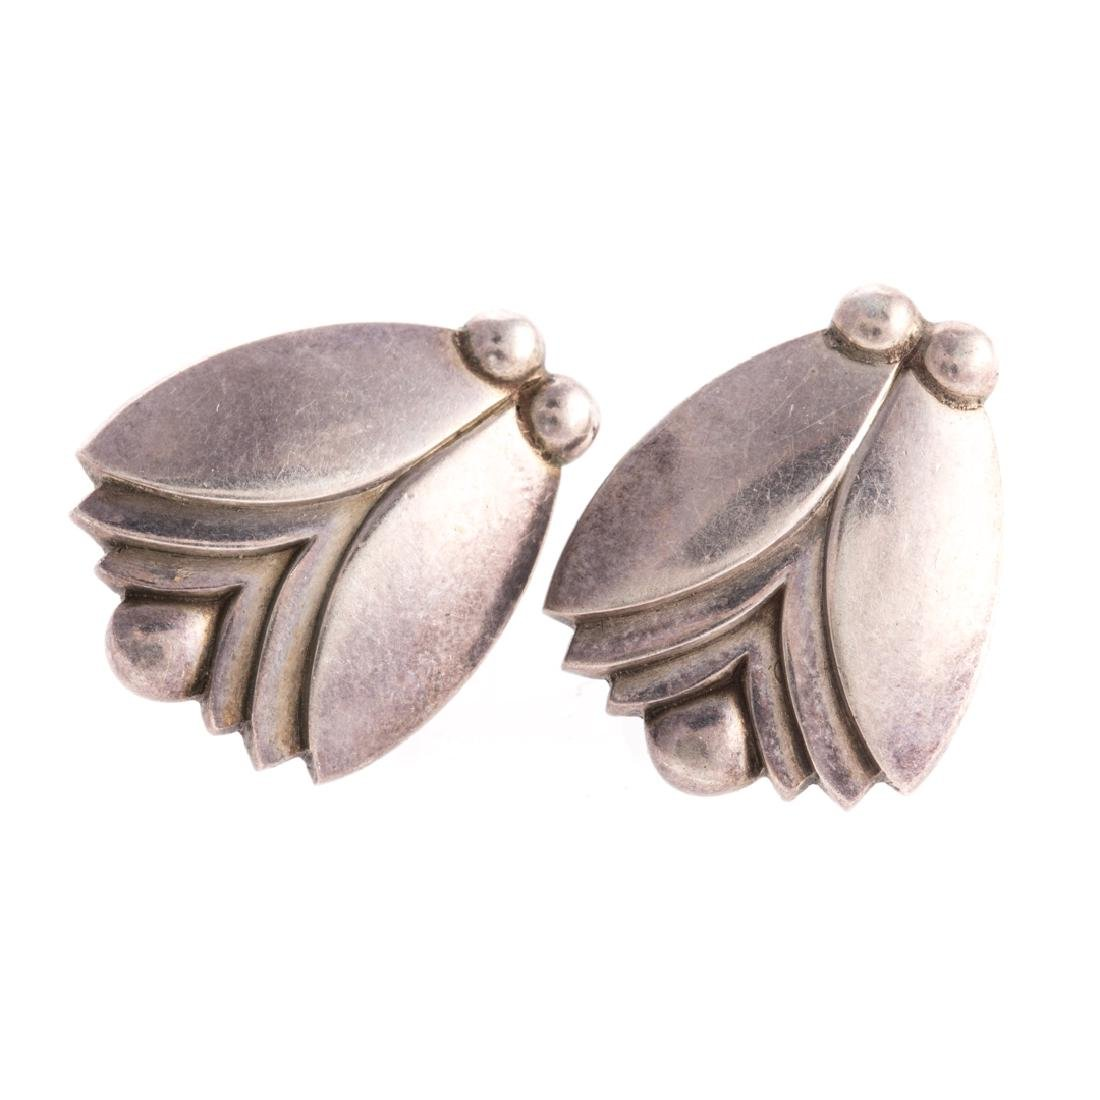 A Collection of Georg Jensen Silver Jewelry - 2